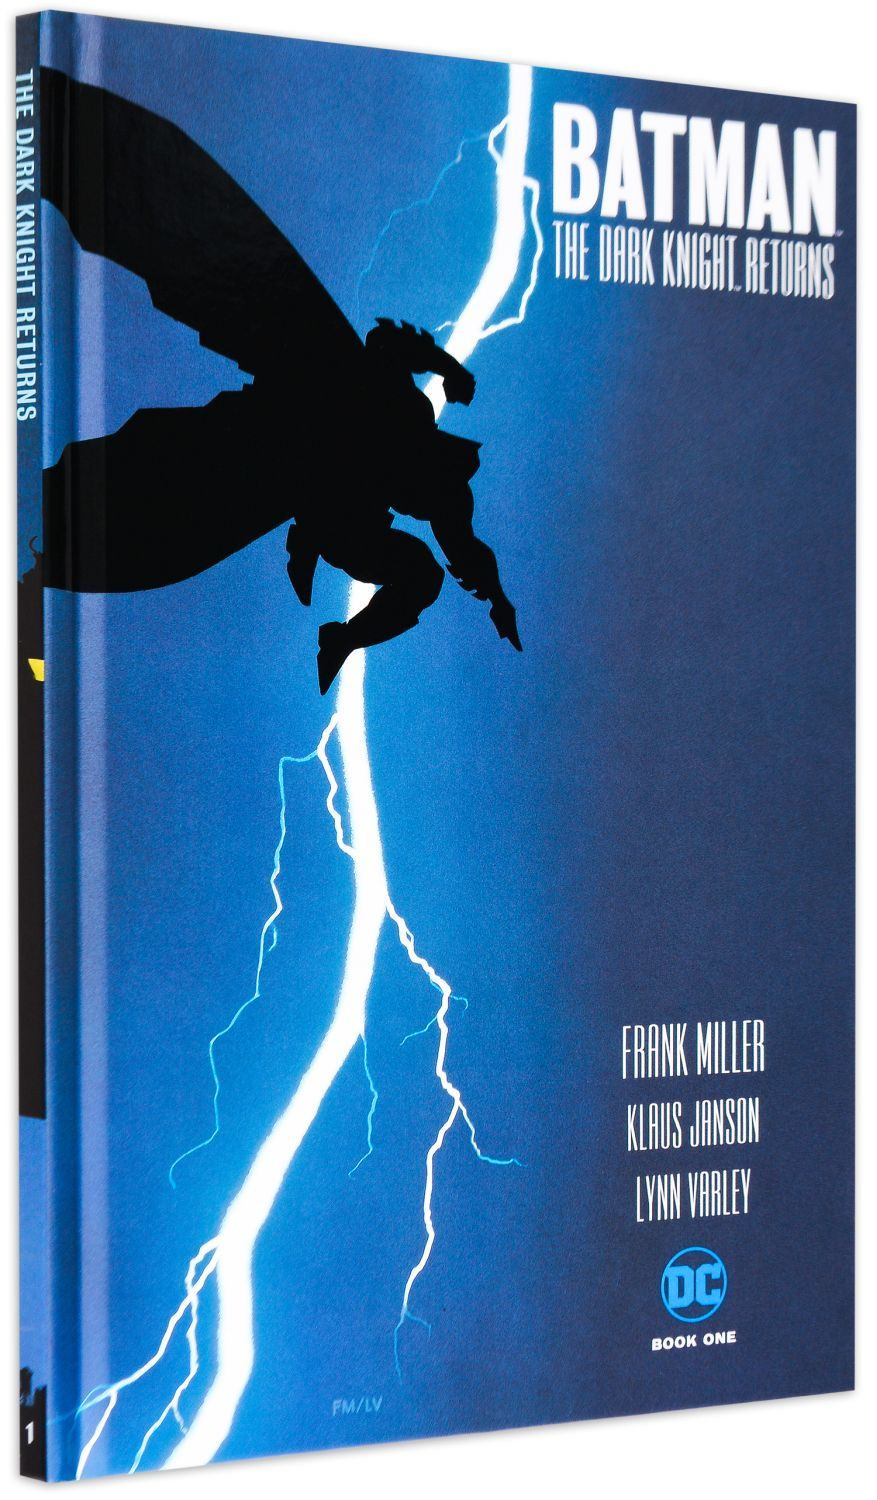 The Dark Knight Returns Slipcase Set (комикс)-2 - 3